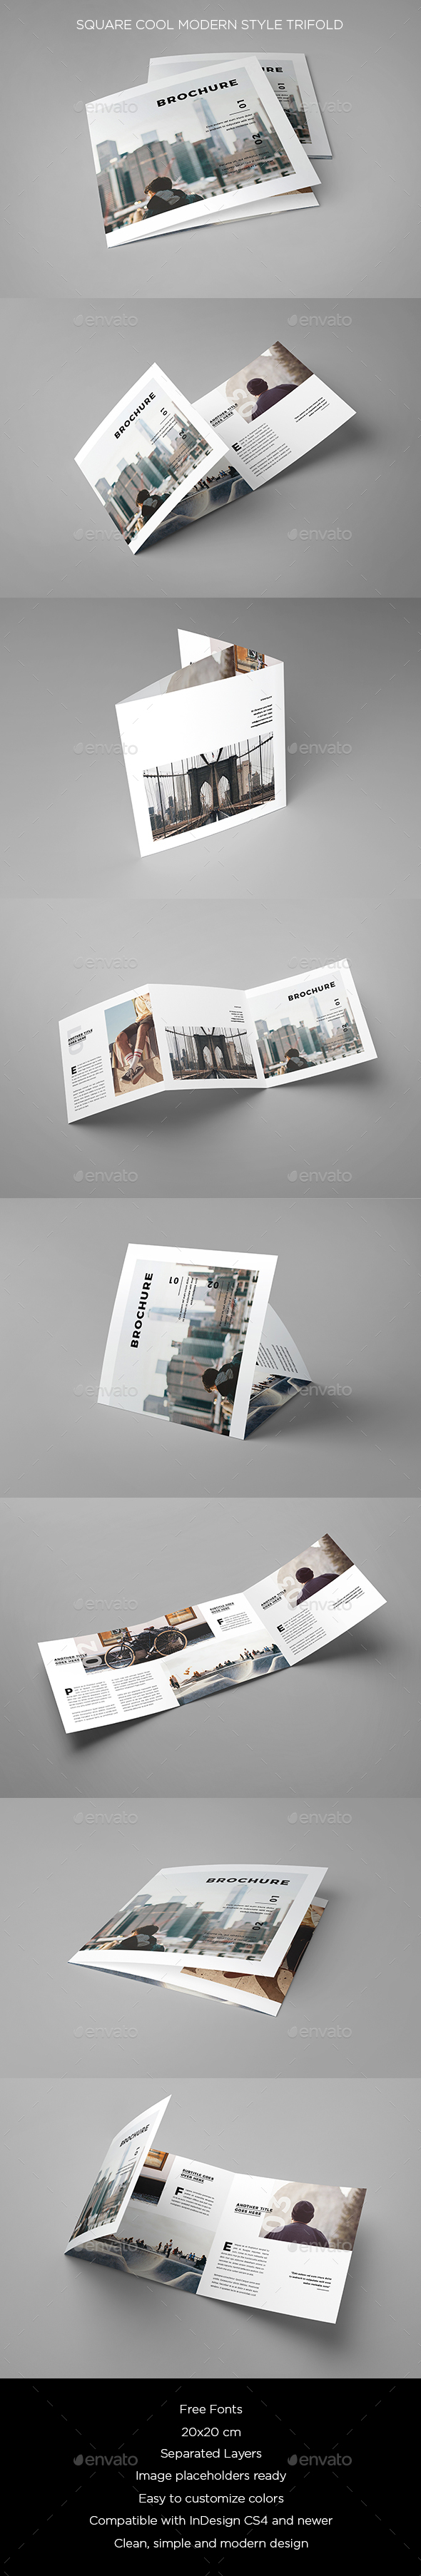 Square Cool Modern Style Trifold - Brochures Print Templates